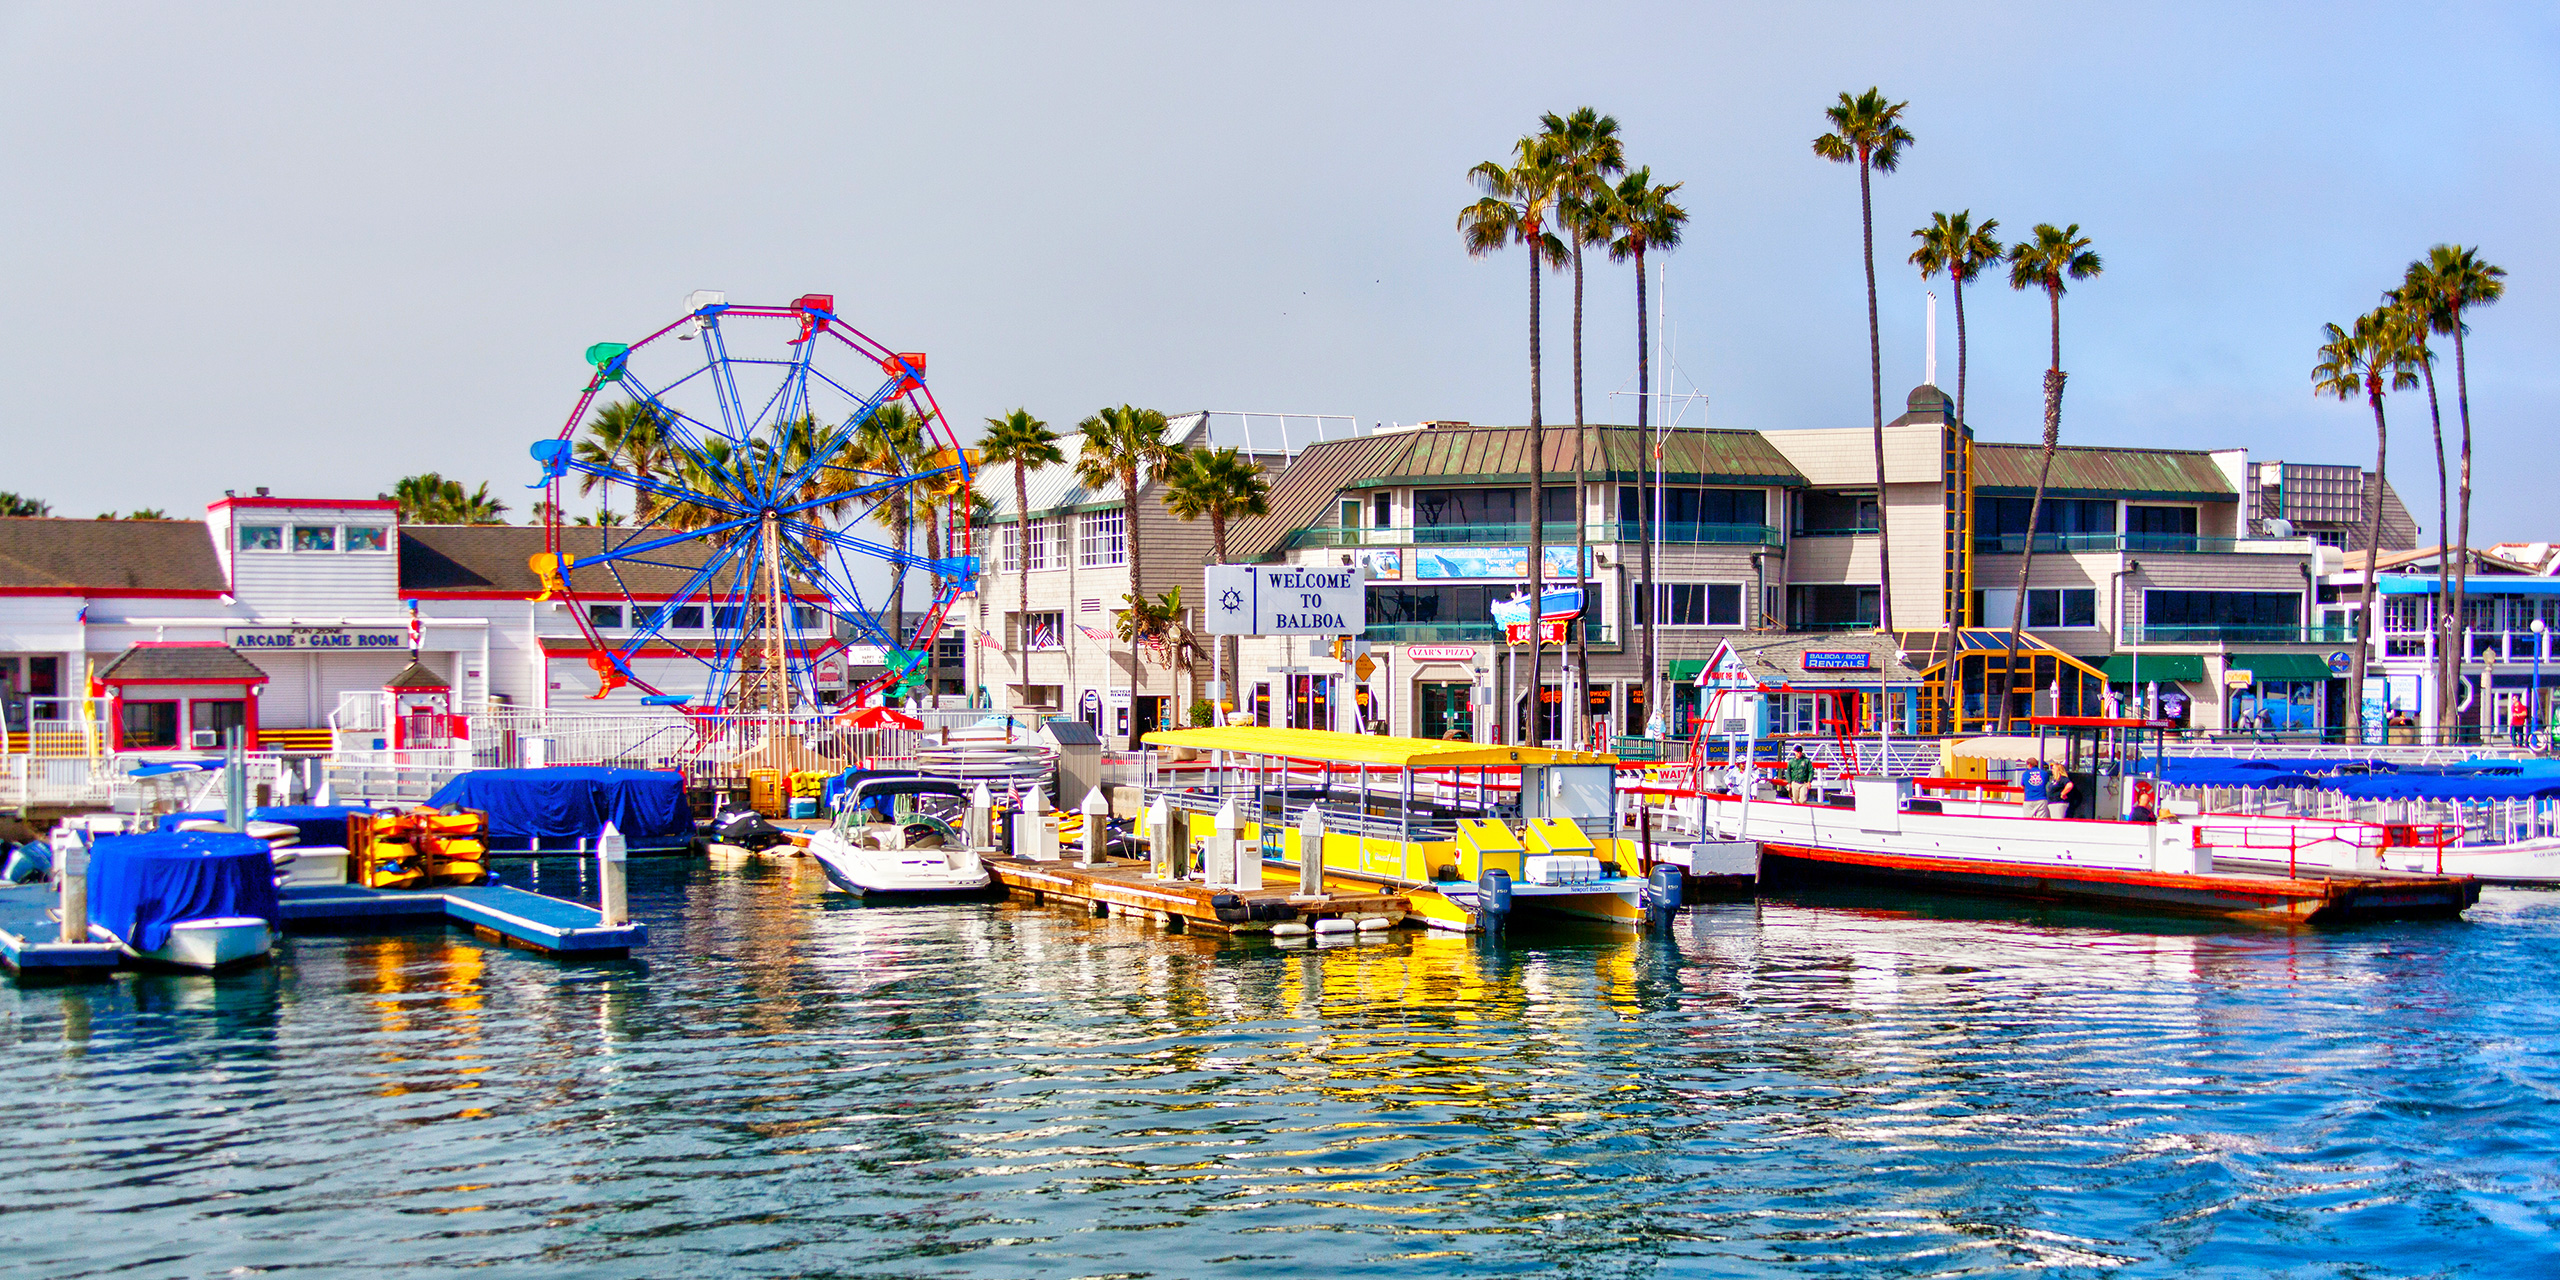 Popular pier at Balboa peninsula in Southern California with ferris wheel, tourist shops, restaurants and boats doting the harbor ferry terminal.; Courtesy of Ronnie Chua/Shutterstock